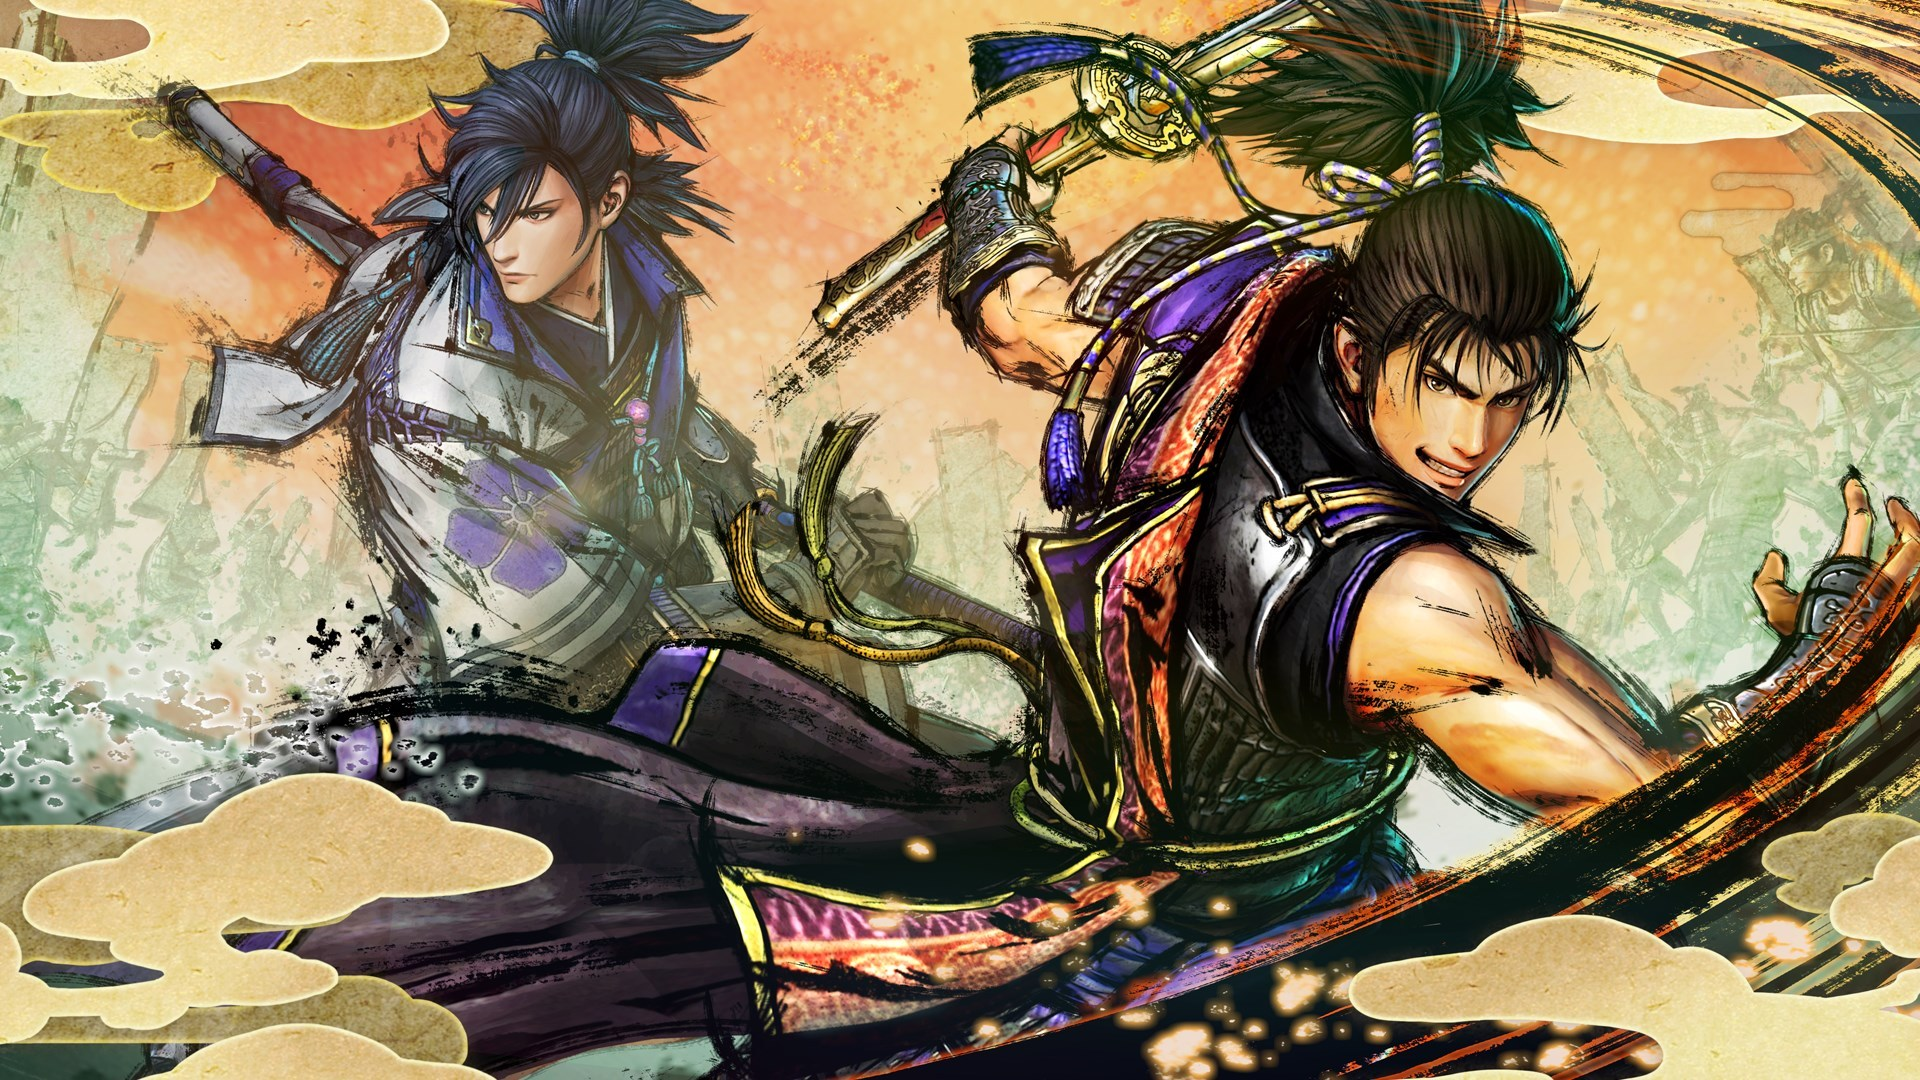 SAMURAI WARRIORS 5 Is Now Available For Digital Pre-order And Pre-download On Xbox One And Xbox Series X S 1